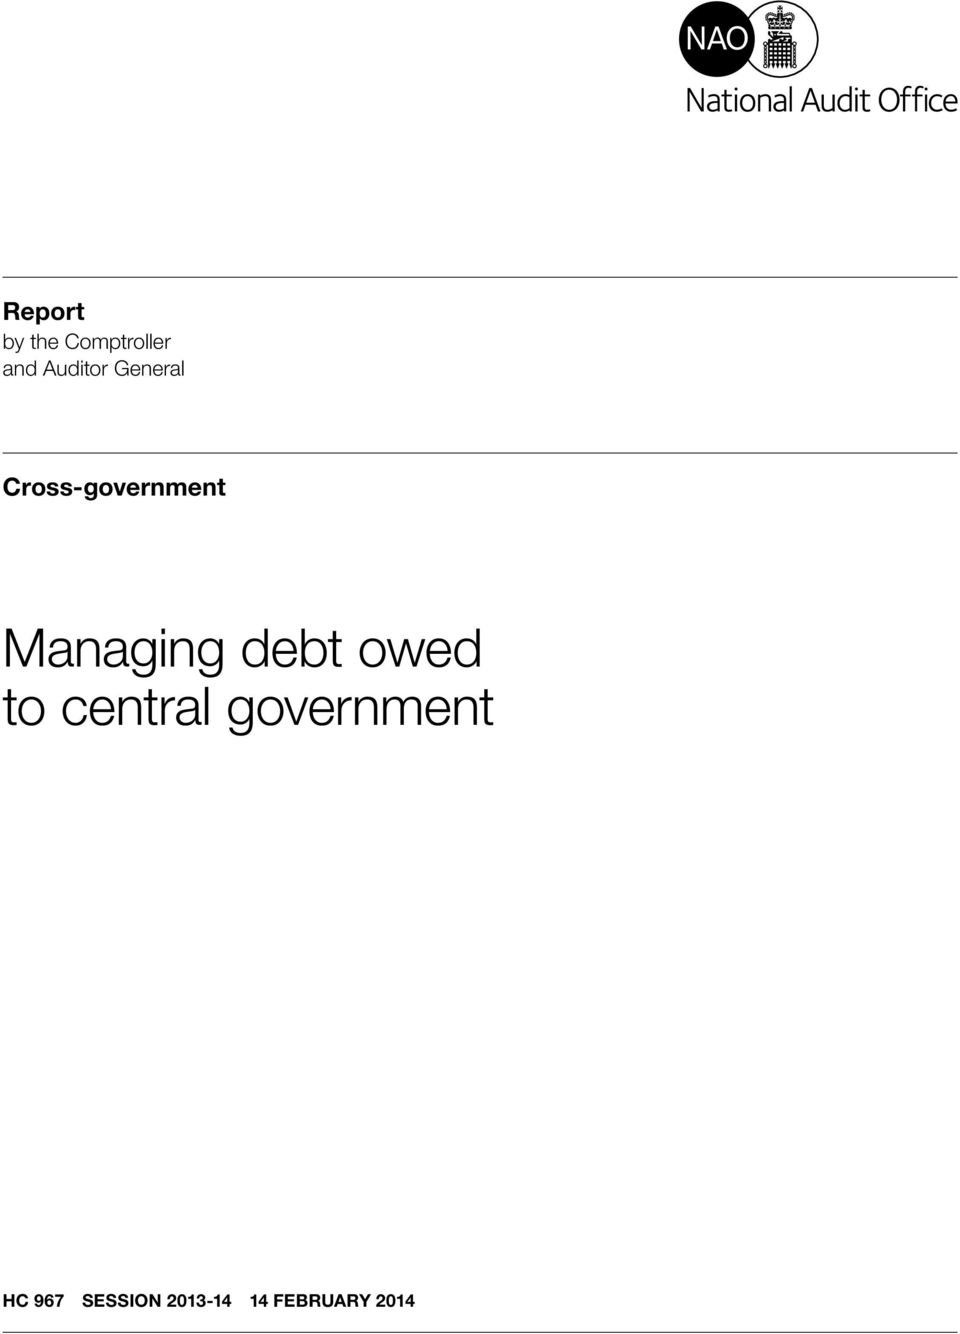 Managing debt owed to central